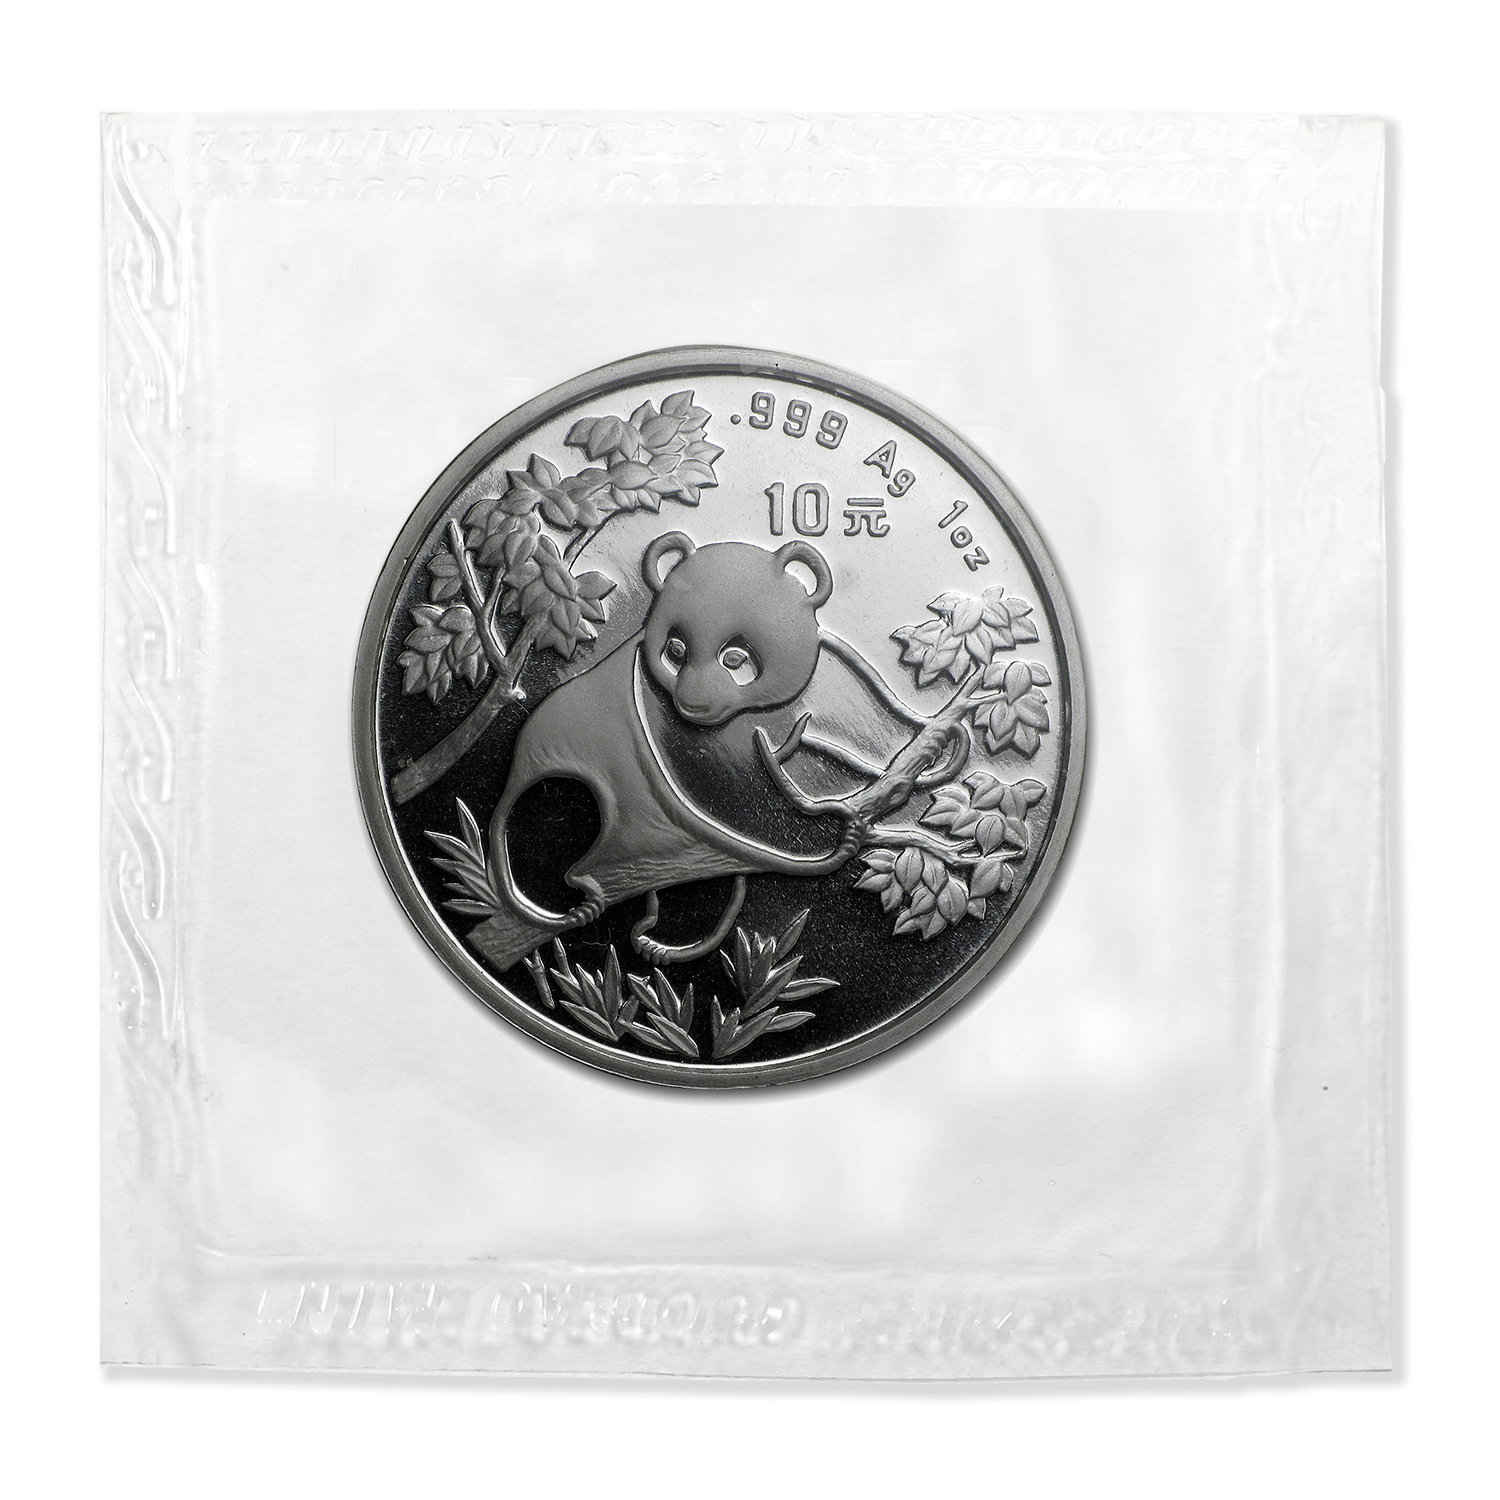 1992 1 oz Silver Chinese Panda Large Date BU (Sealed)